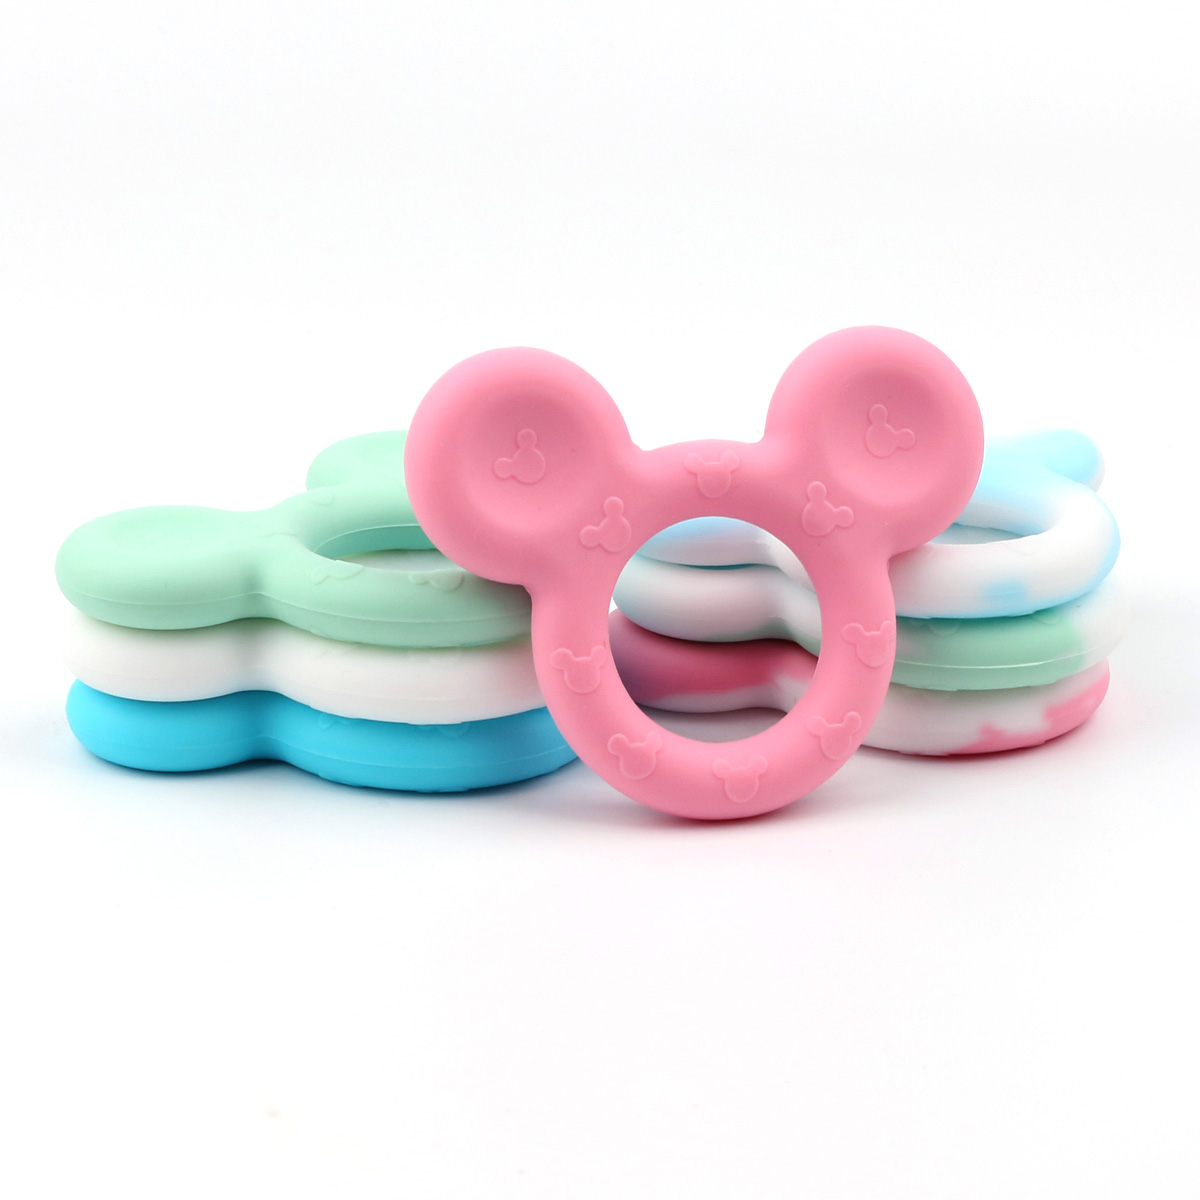 Food Grade Silicone Baby Teether Animal Baby Teething Toys Mickey Head Teether Ring Bpa Free Baby Chew Toy Soft Safe Baby Stuff duck animal series many chew toy